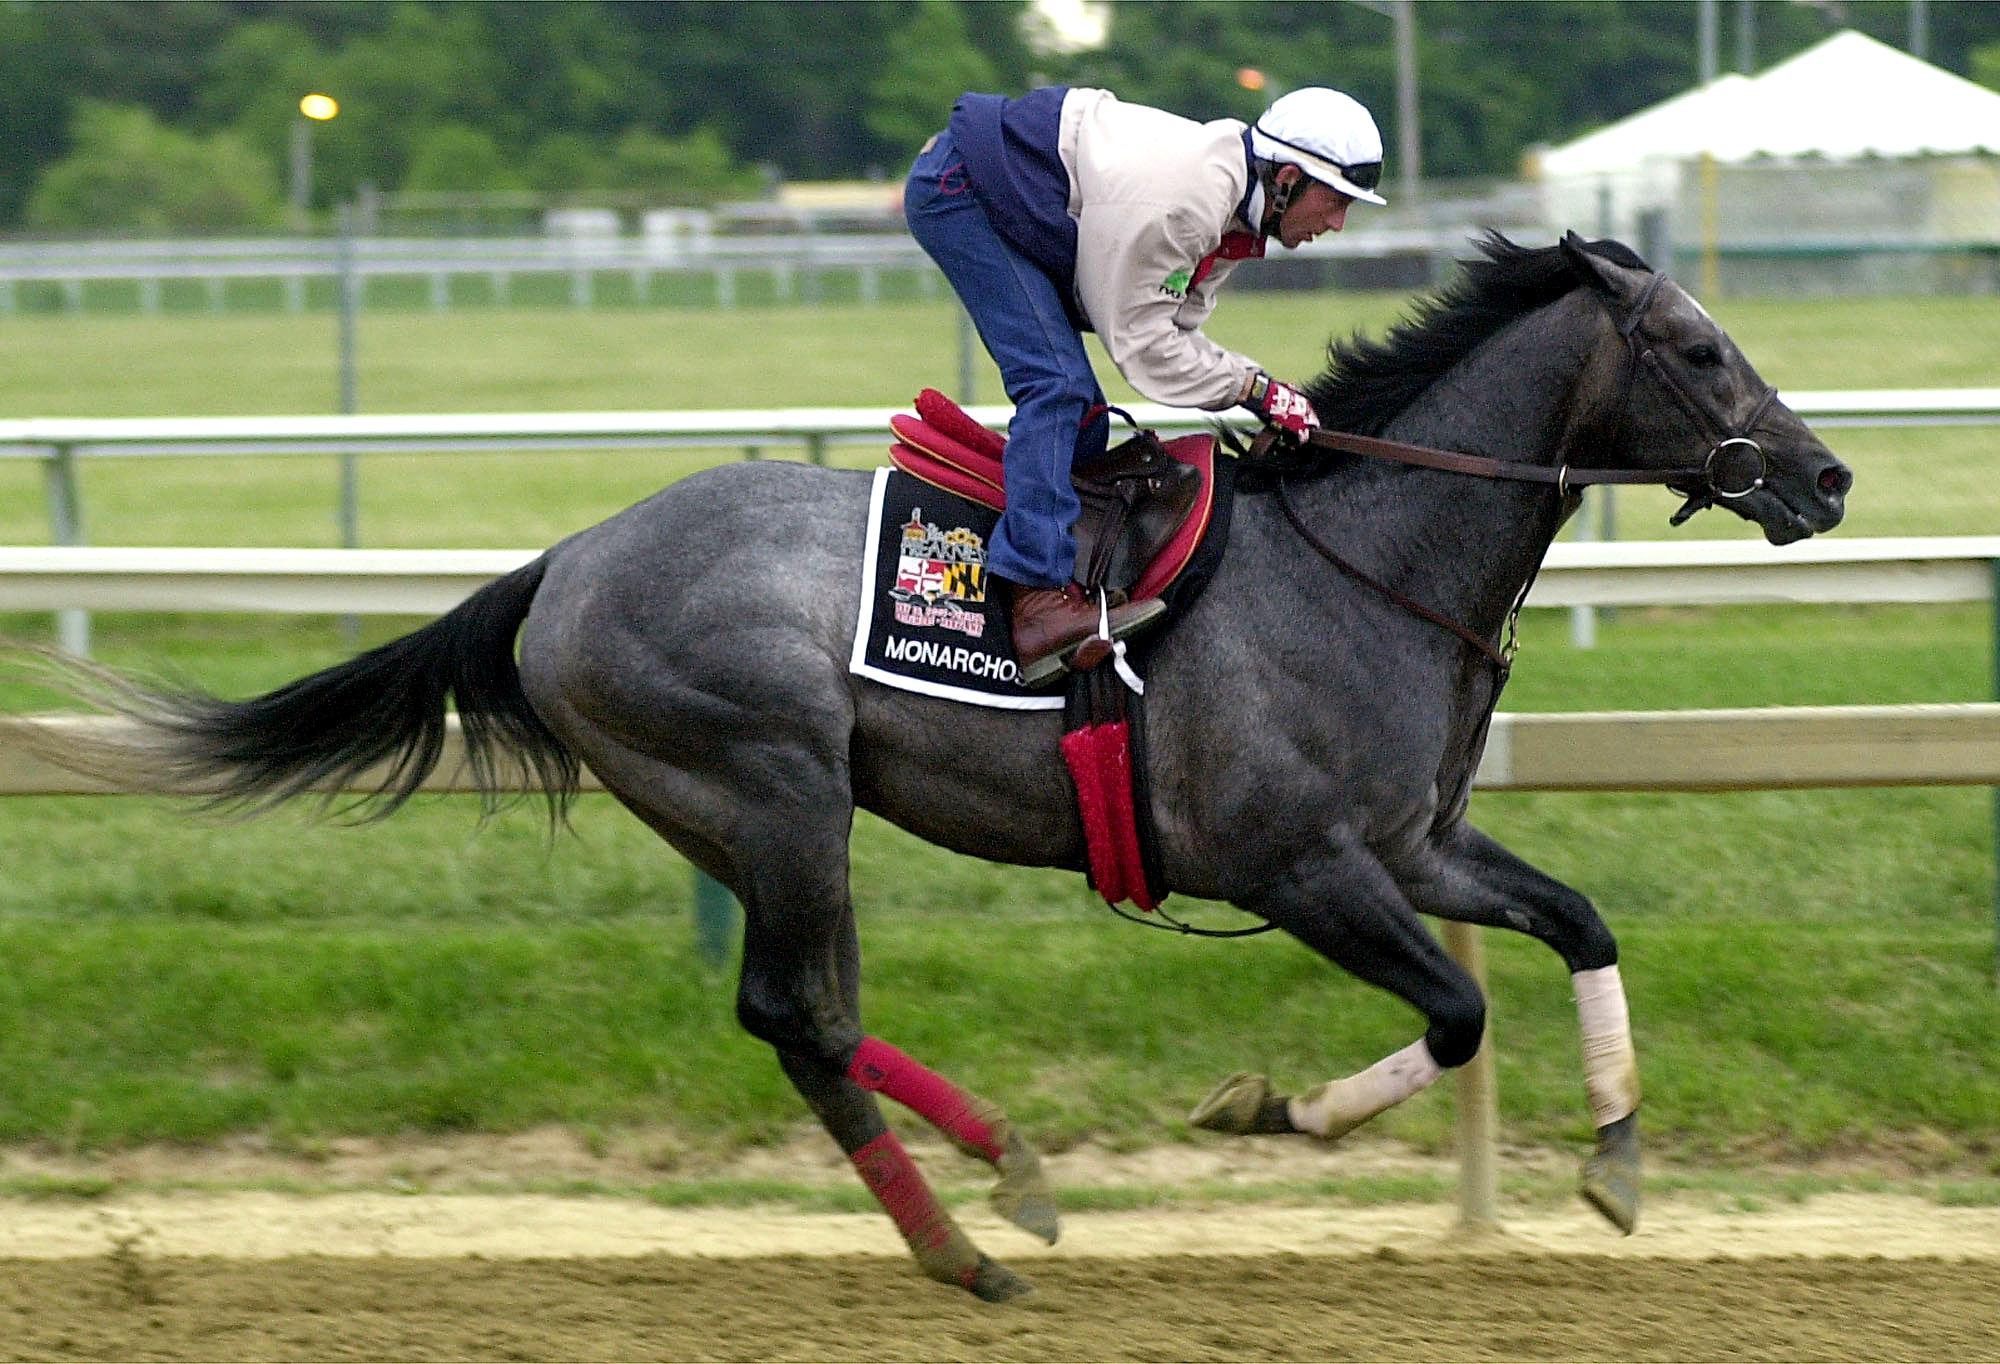 Bryan Beccia, exercise rider, takes the Kentucky Derby winner, Monarchos, for a gallop